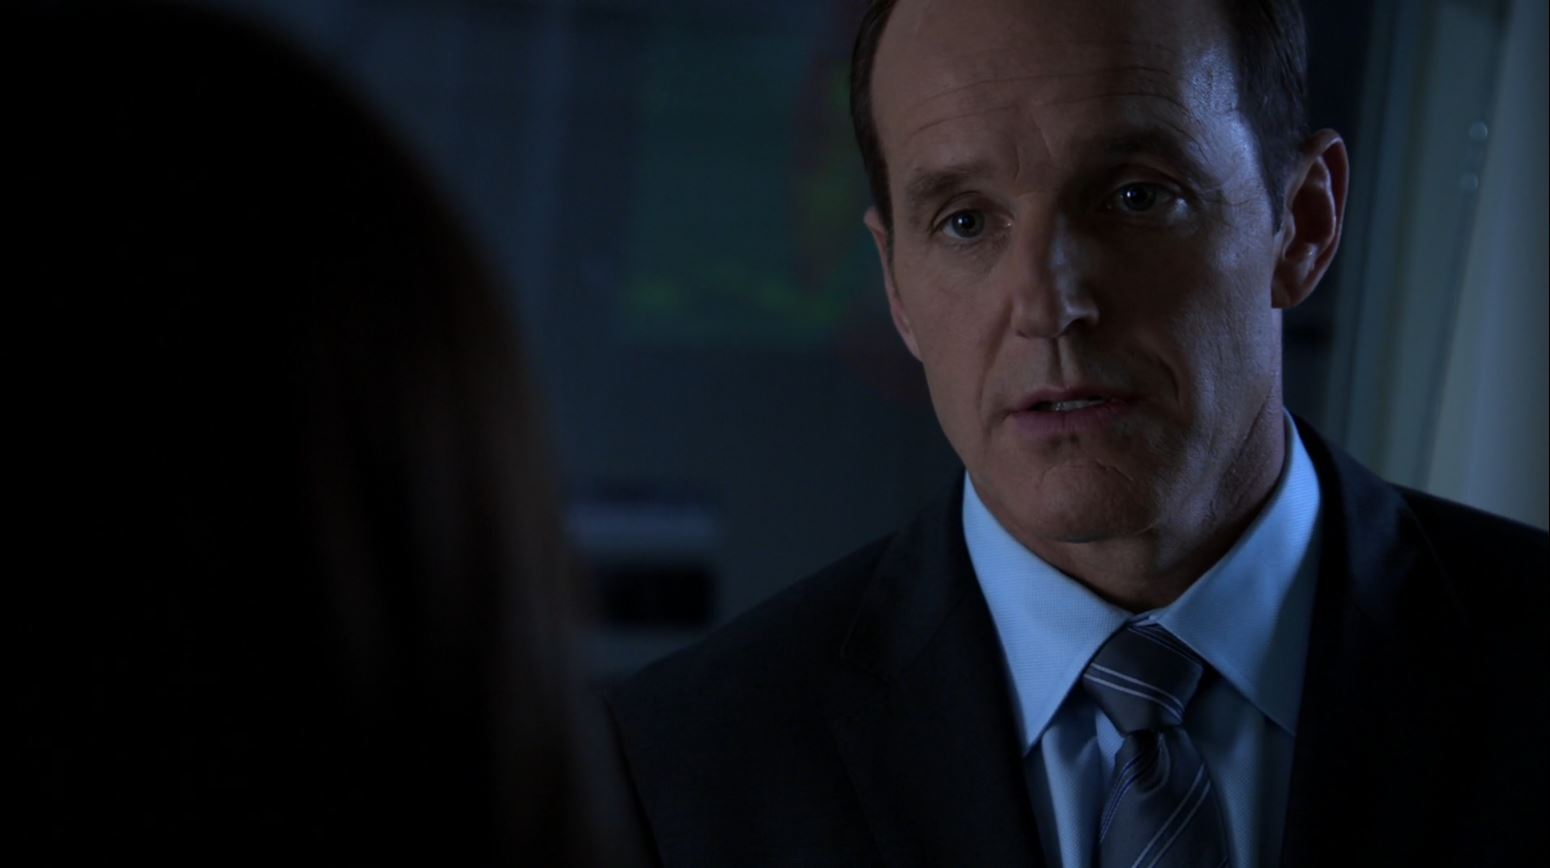 Agents of S.H.I.E.L.D S1Ep15 'Yes Men' - Clark Gregg as Coulson conspires with Skye